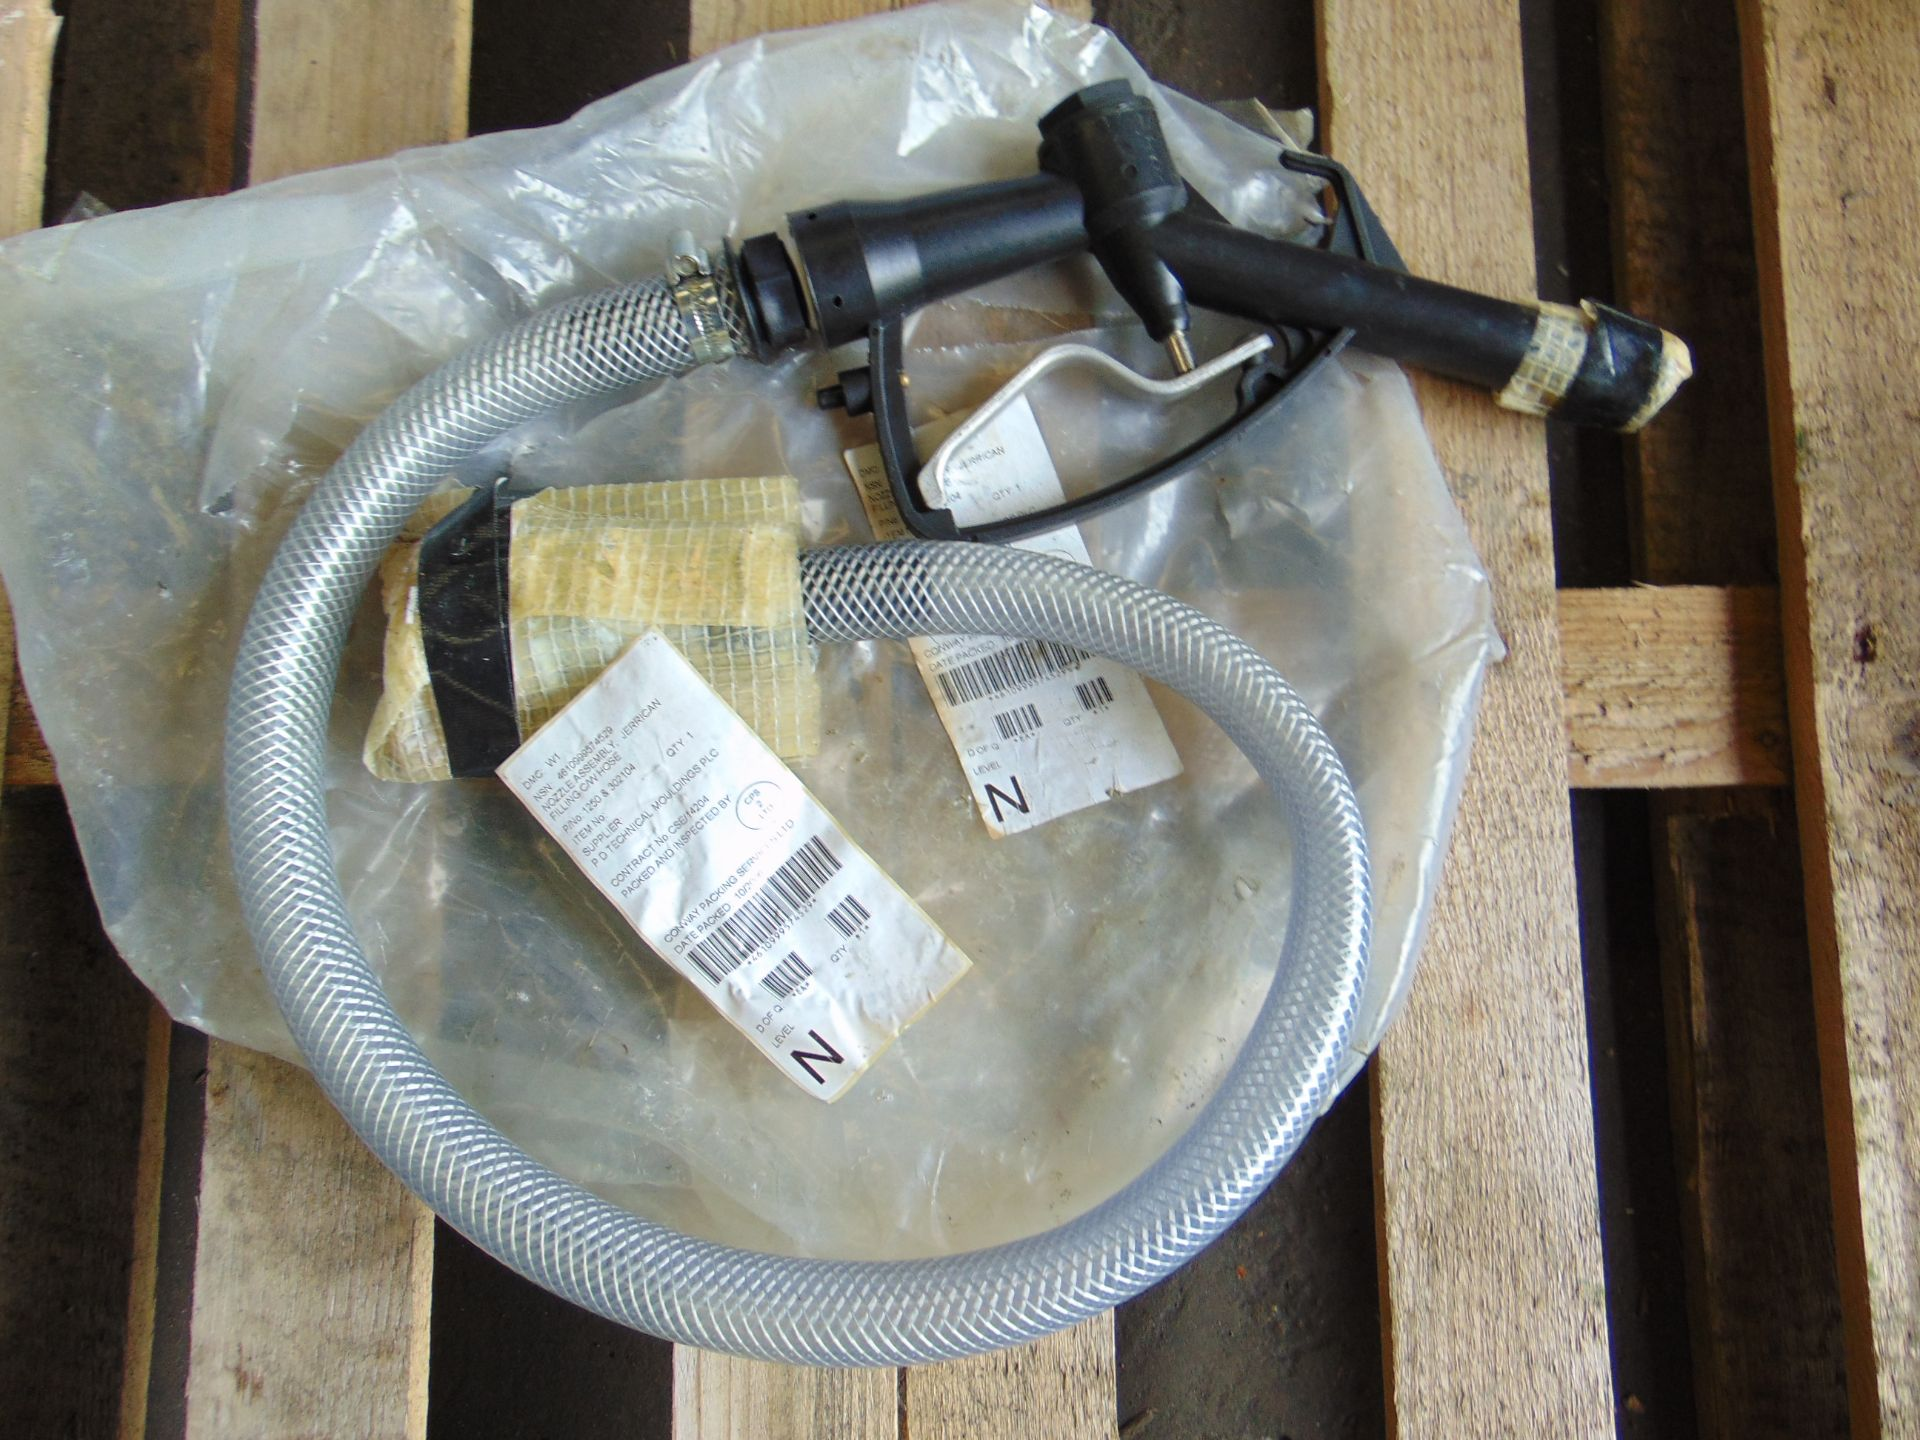 Lot 16 - Unissued Diesel Gravity Refuelling Hose Kit c/w Nozzle and Valve as Shown